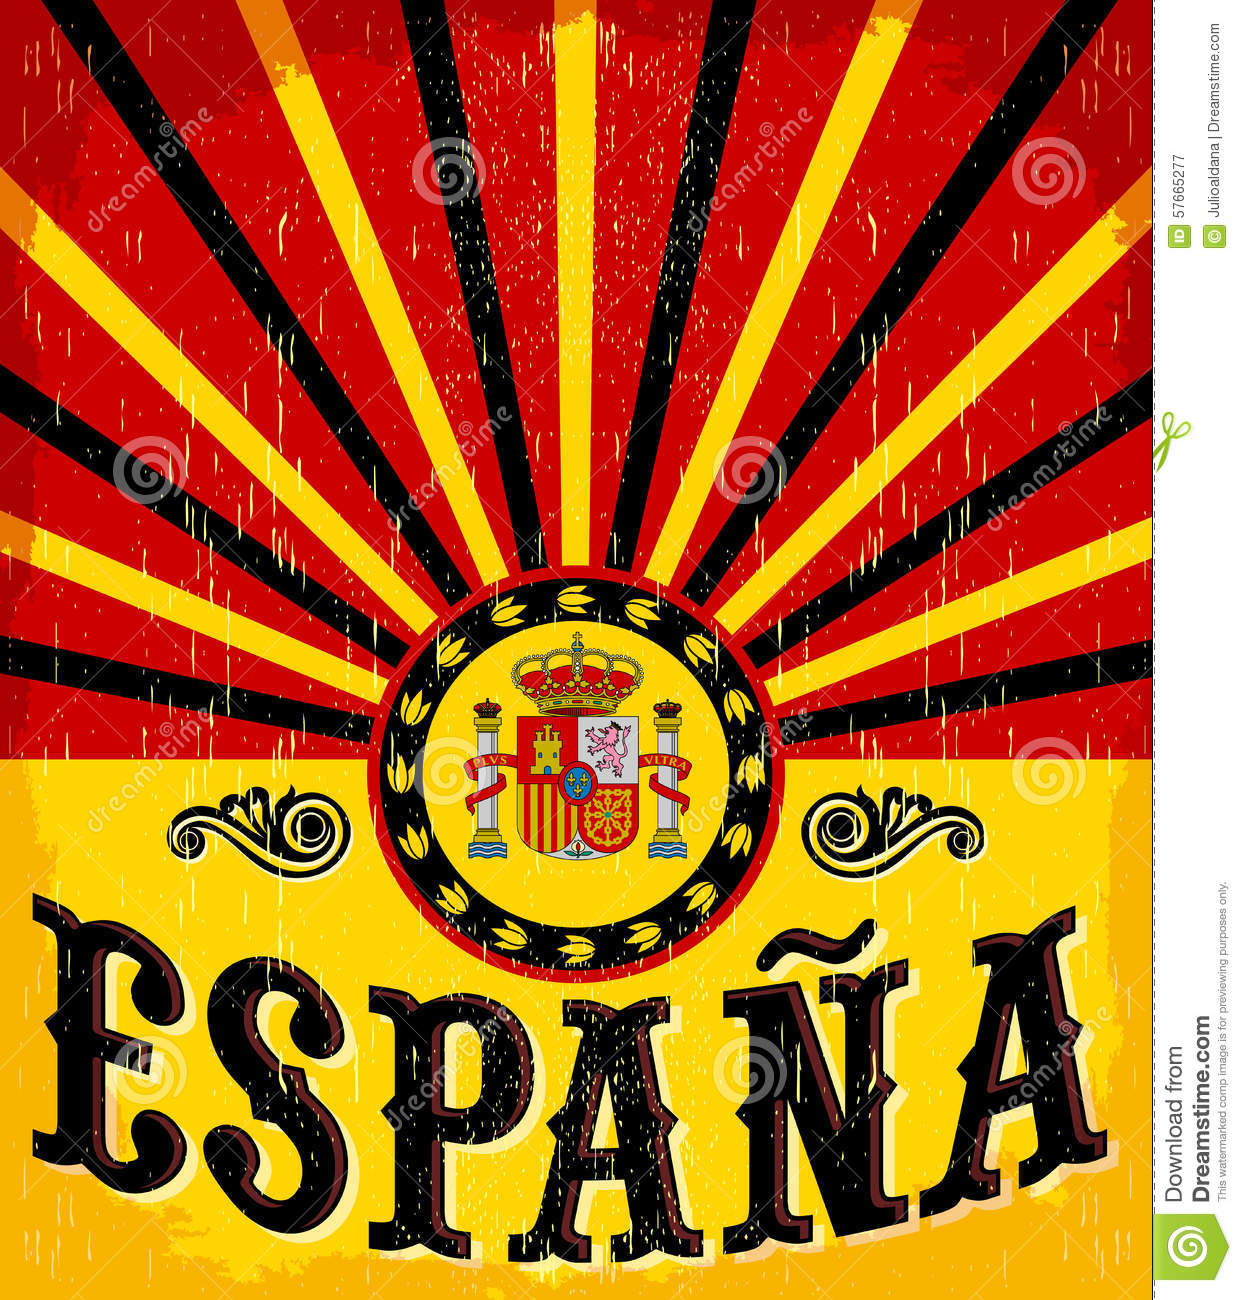 Stock Illustration Espana Spain Spanish Text Vintage Card Poster Vector Illustration Flag Colors Grunge Effects Can Be Easily Removed Image57665277 on vintage settings